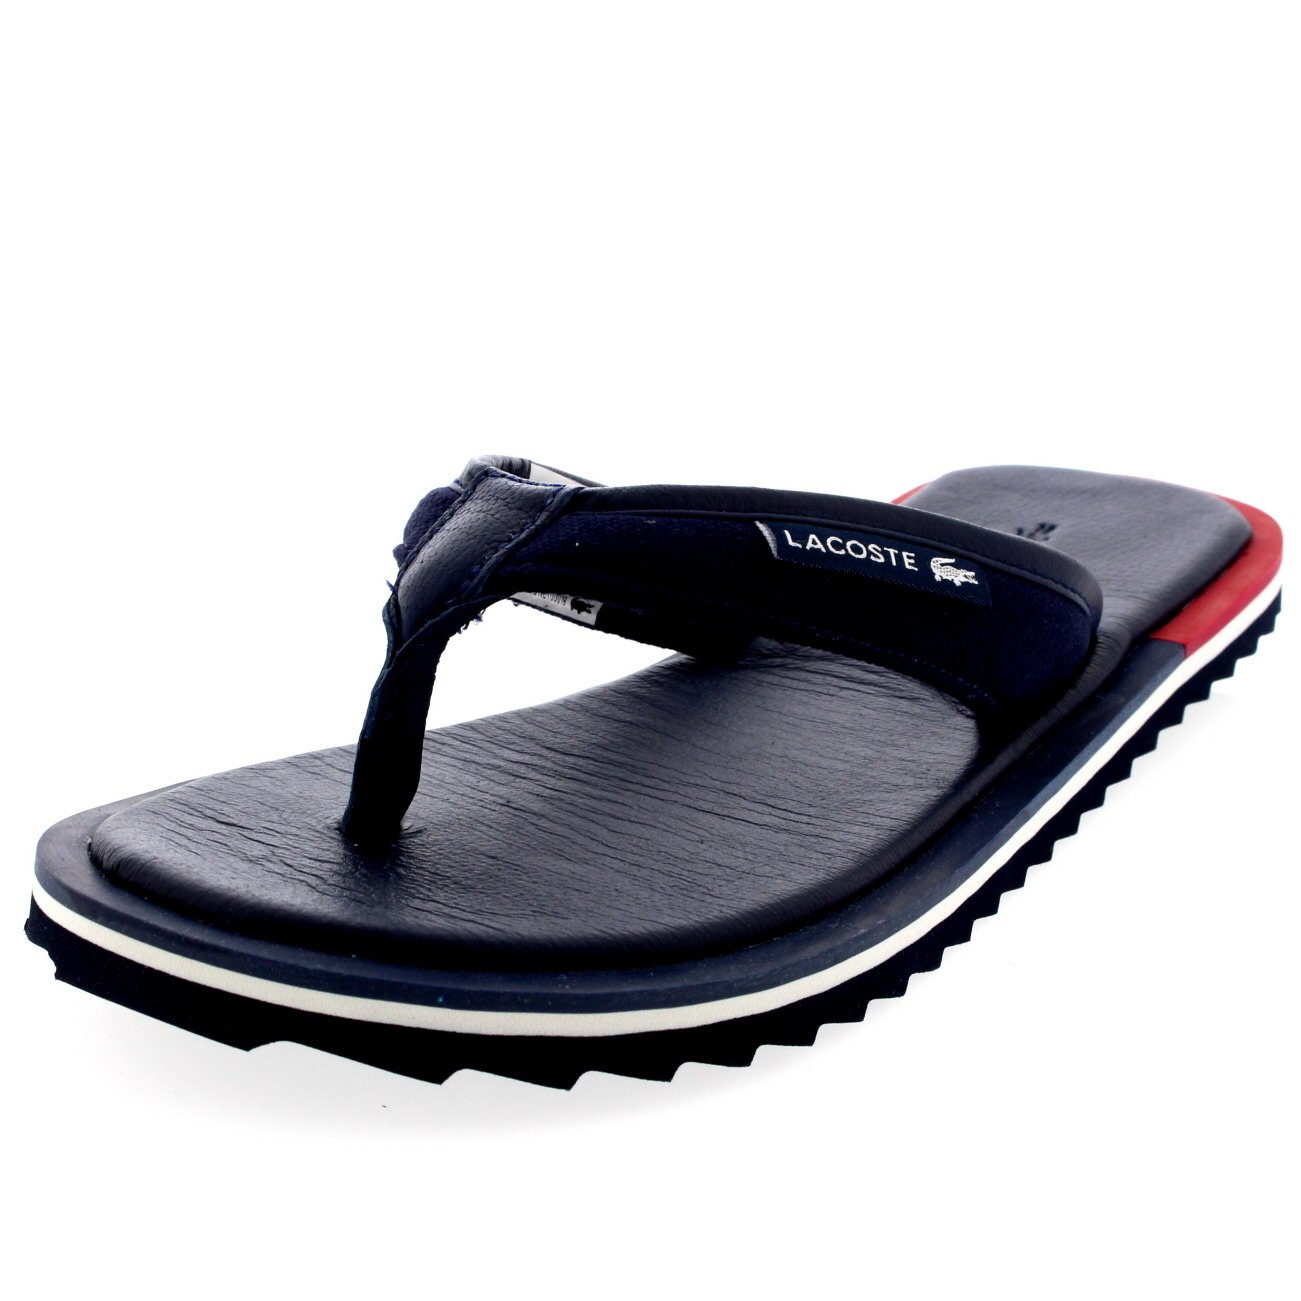 c30b6e91a4c8 Lacoste Mens Athali 2 Holiday Flip Flops Leather Slip On Summer Sandals -  Off White - 12  Amazon.co.uk  Shoes   Bags